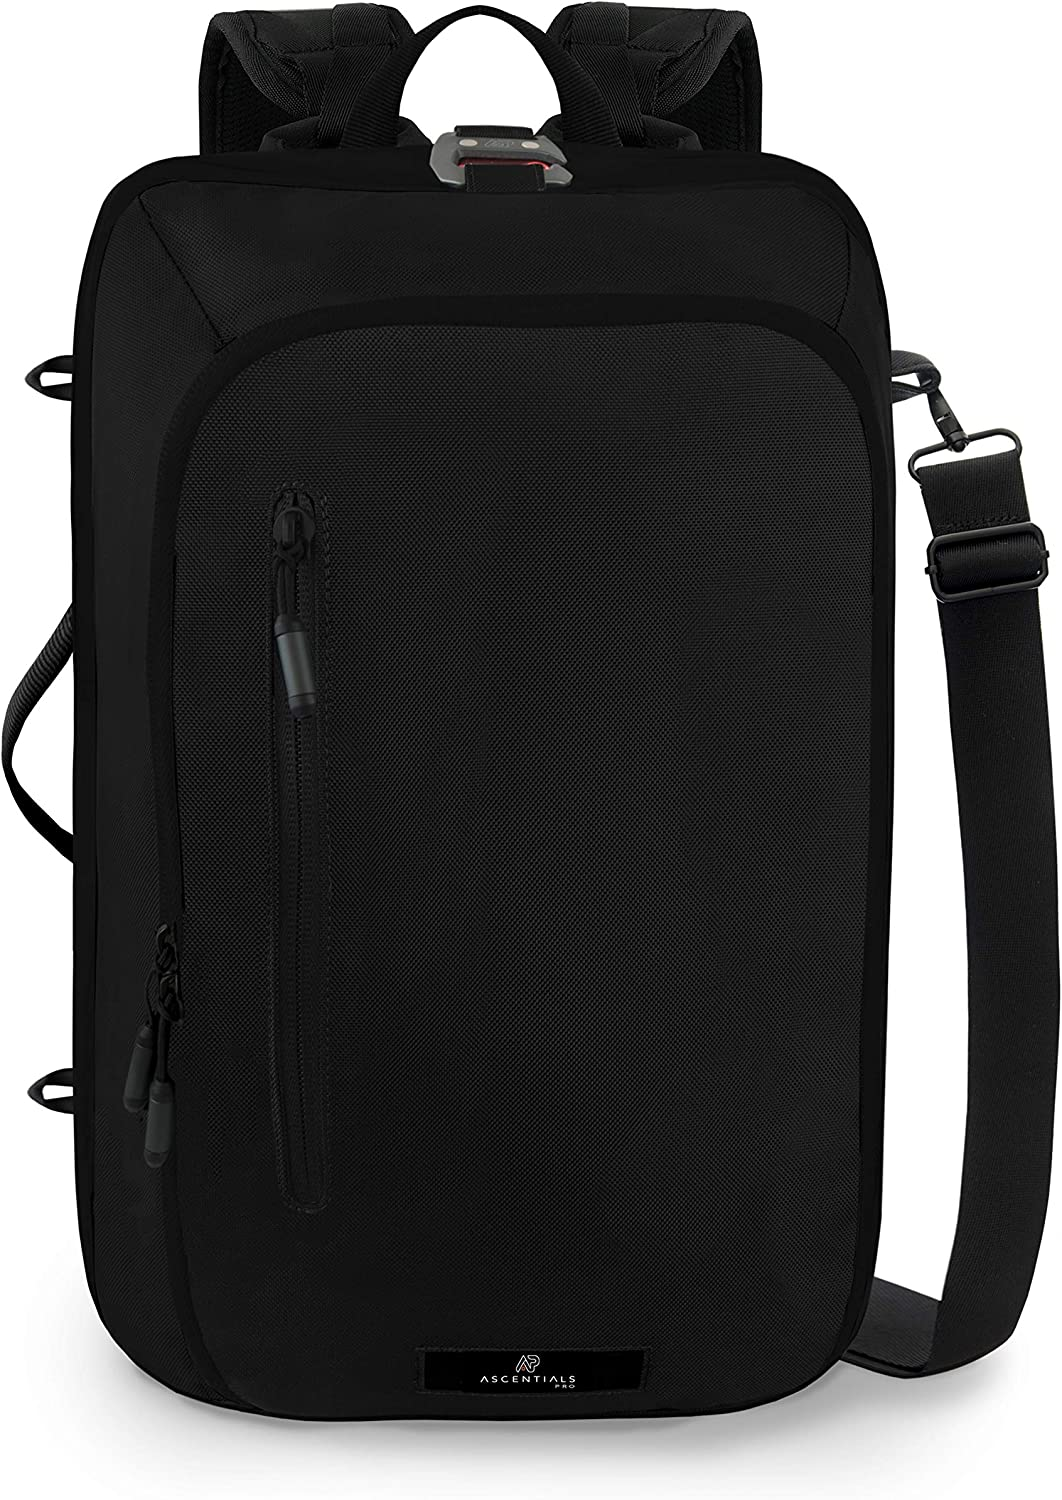 Ascentials Pro Meta, Business Laptop Backpack, Duffel Bag for Men with 15 inch Laptop Sleeve, 22 Liters